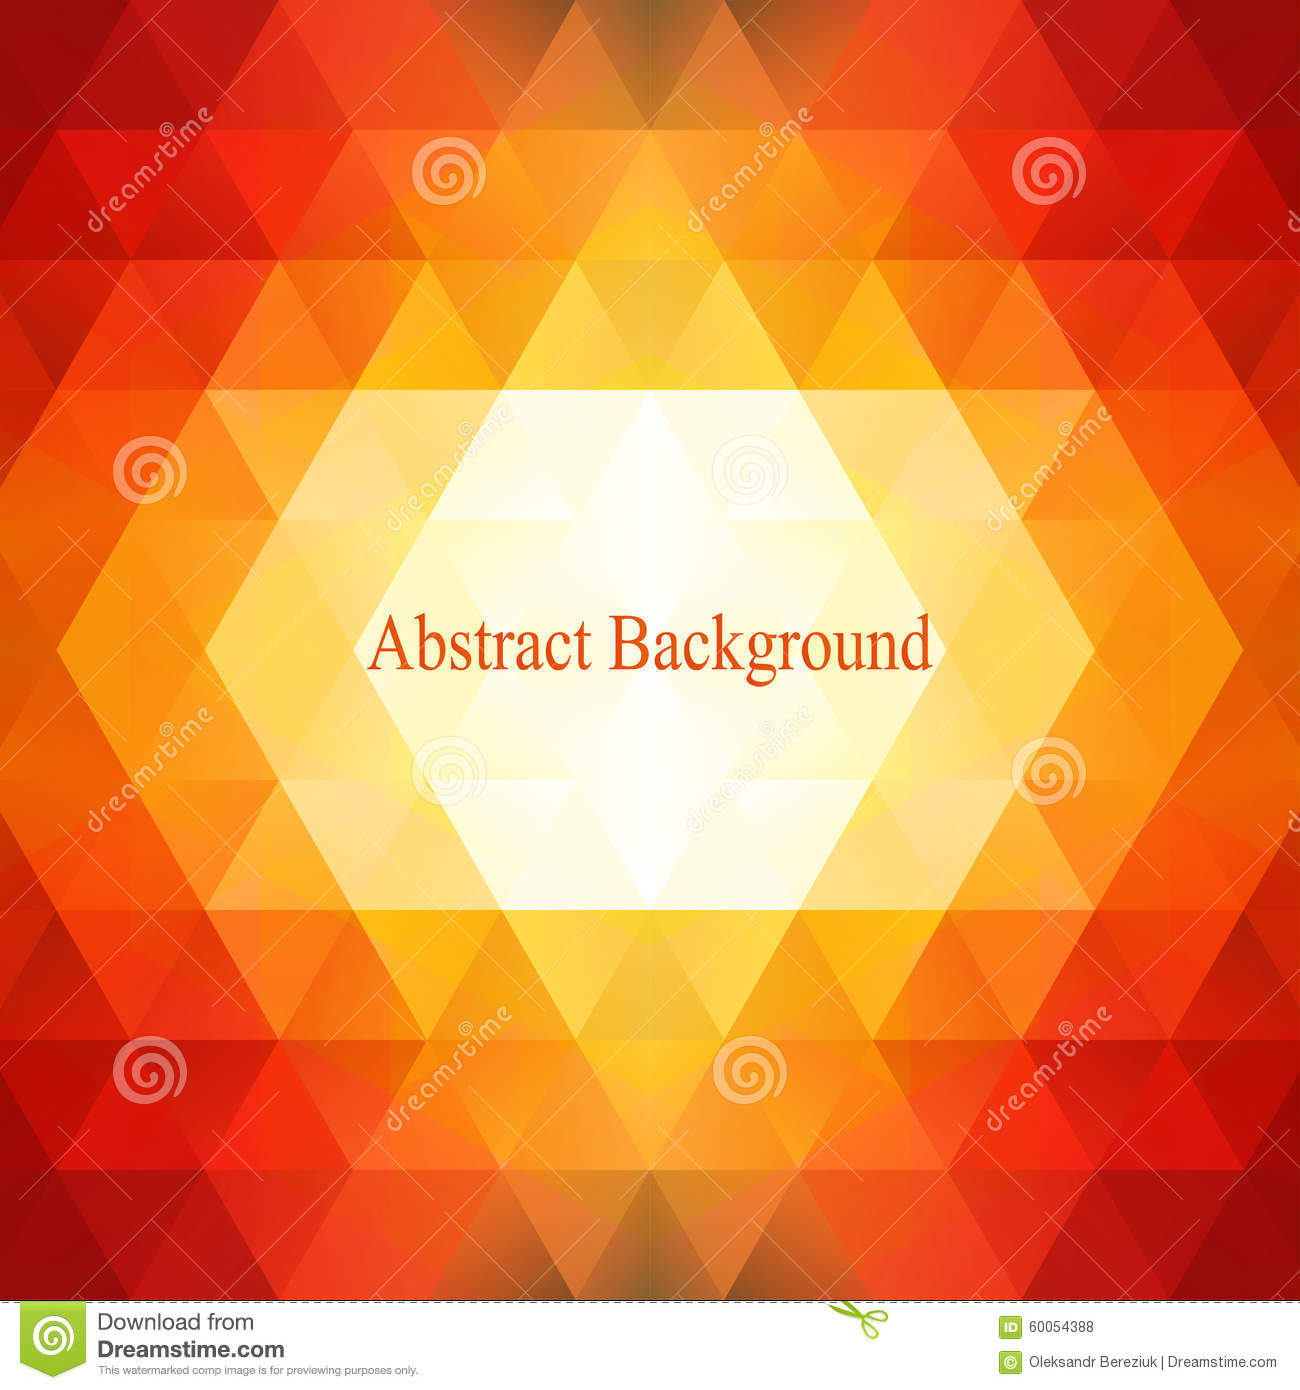 Abstract Book Cover Background ~ Abstract triangles pattern background can be used for